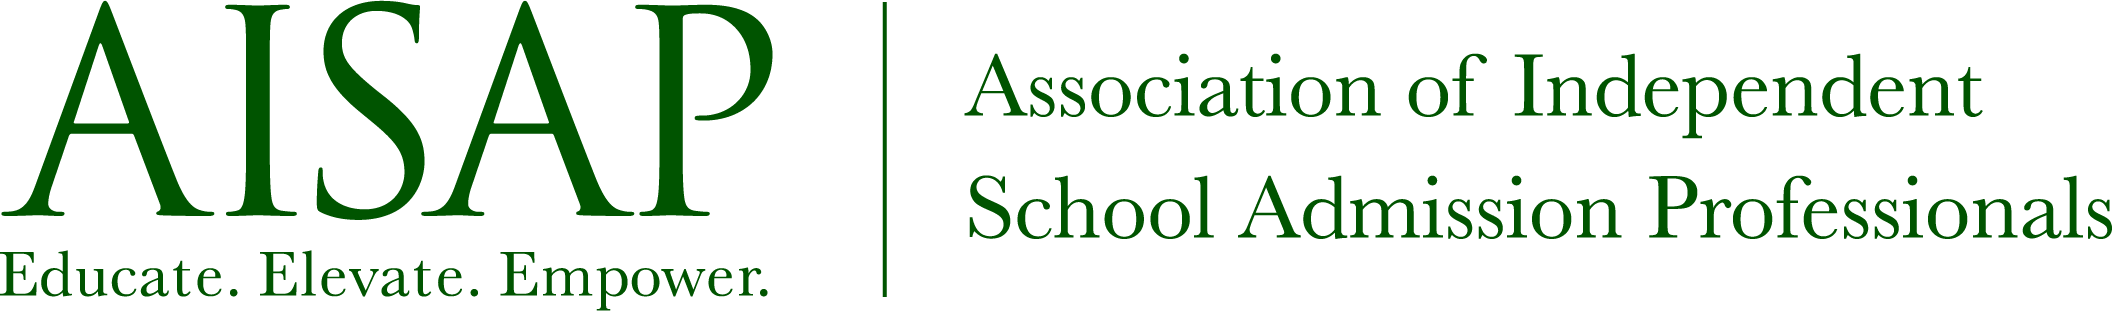 AISAP - Association of Independent  School Admission Professionals